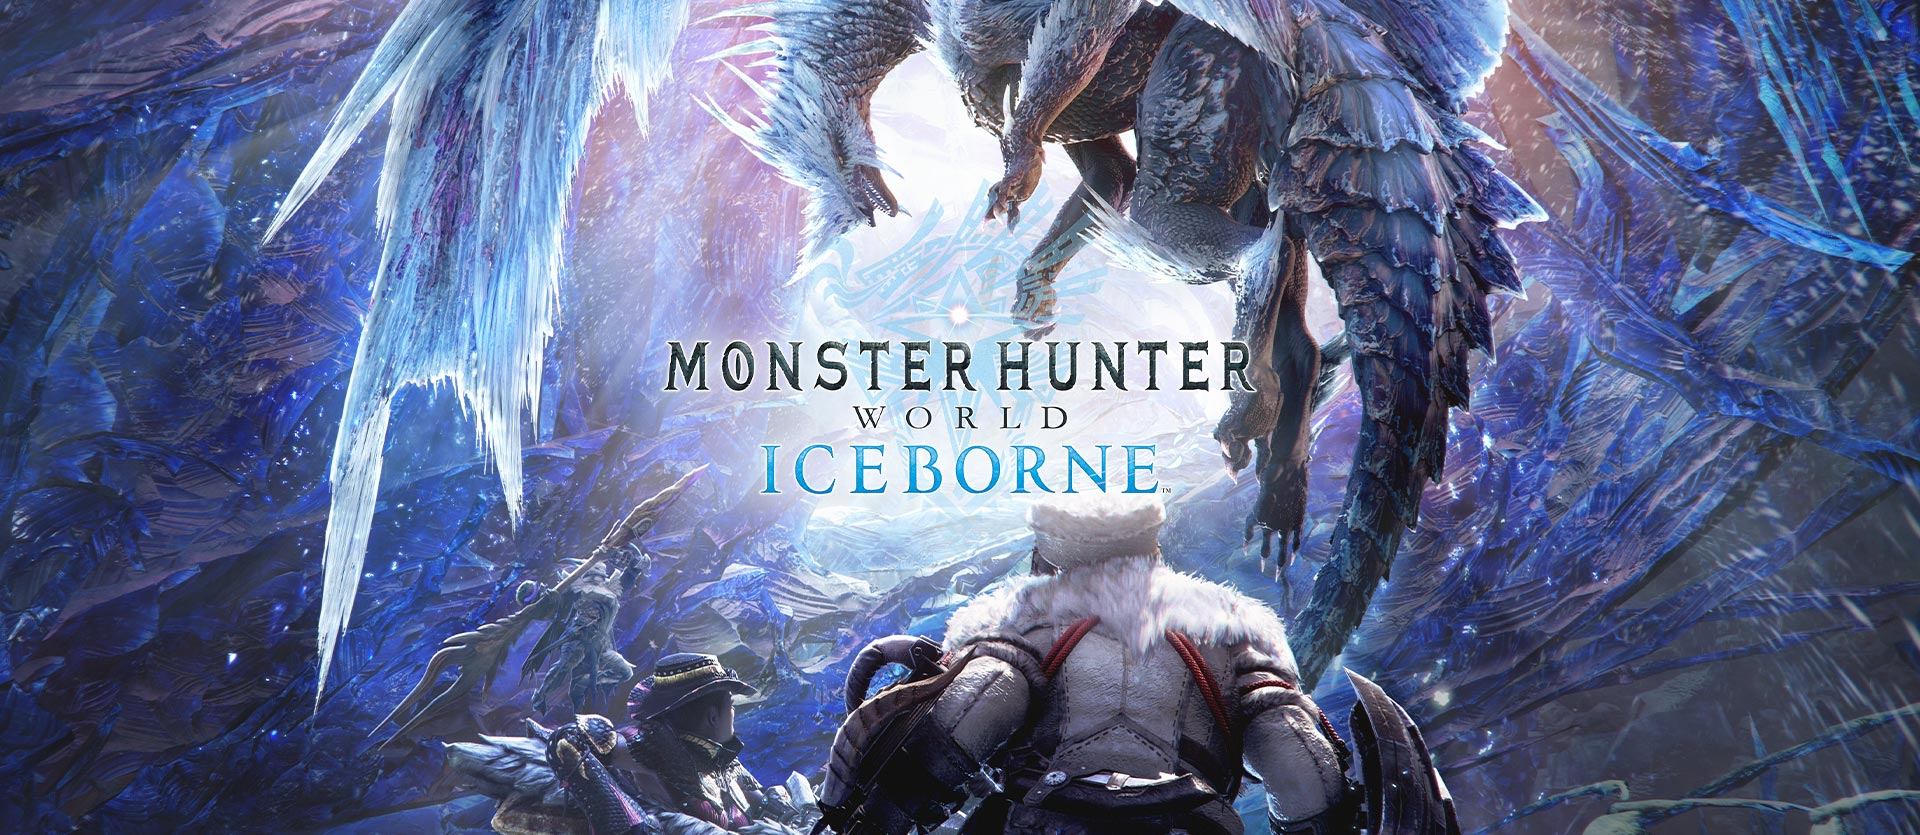 Monster Hunter World, Monster hunters face an ice dragon surrounded by large crystals